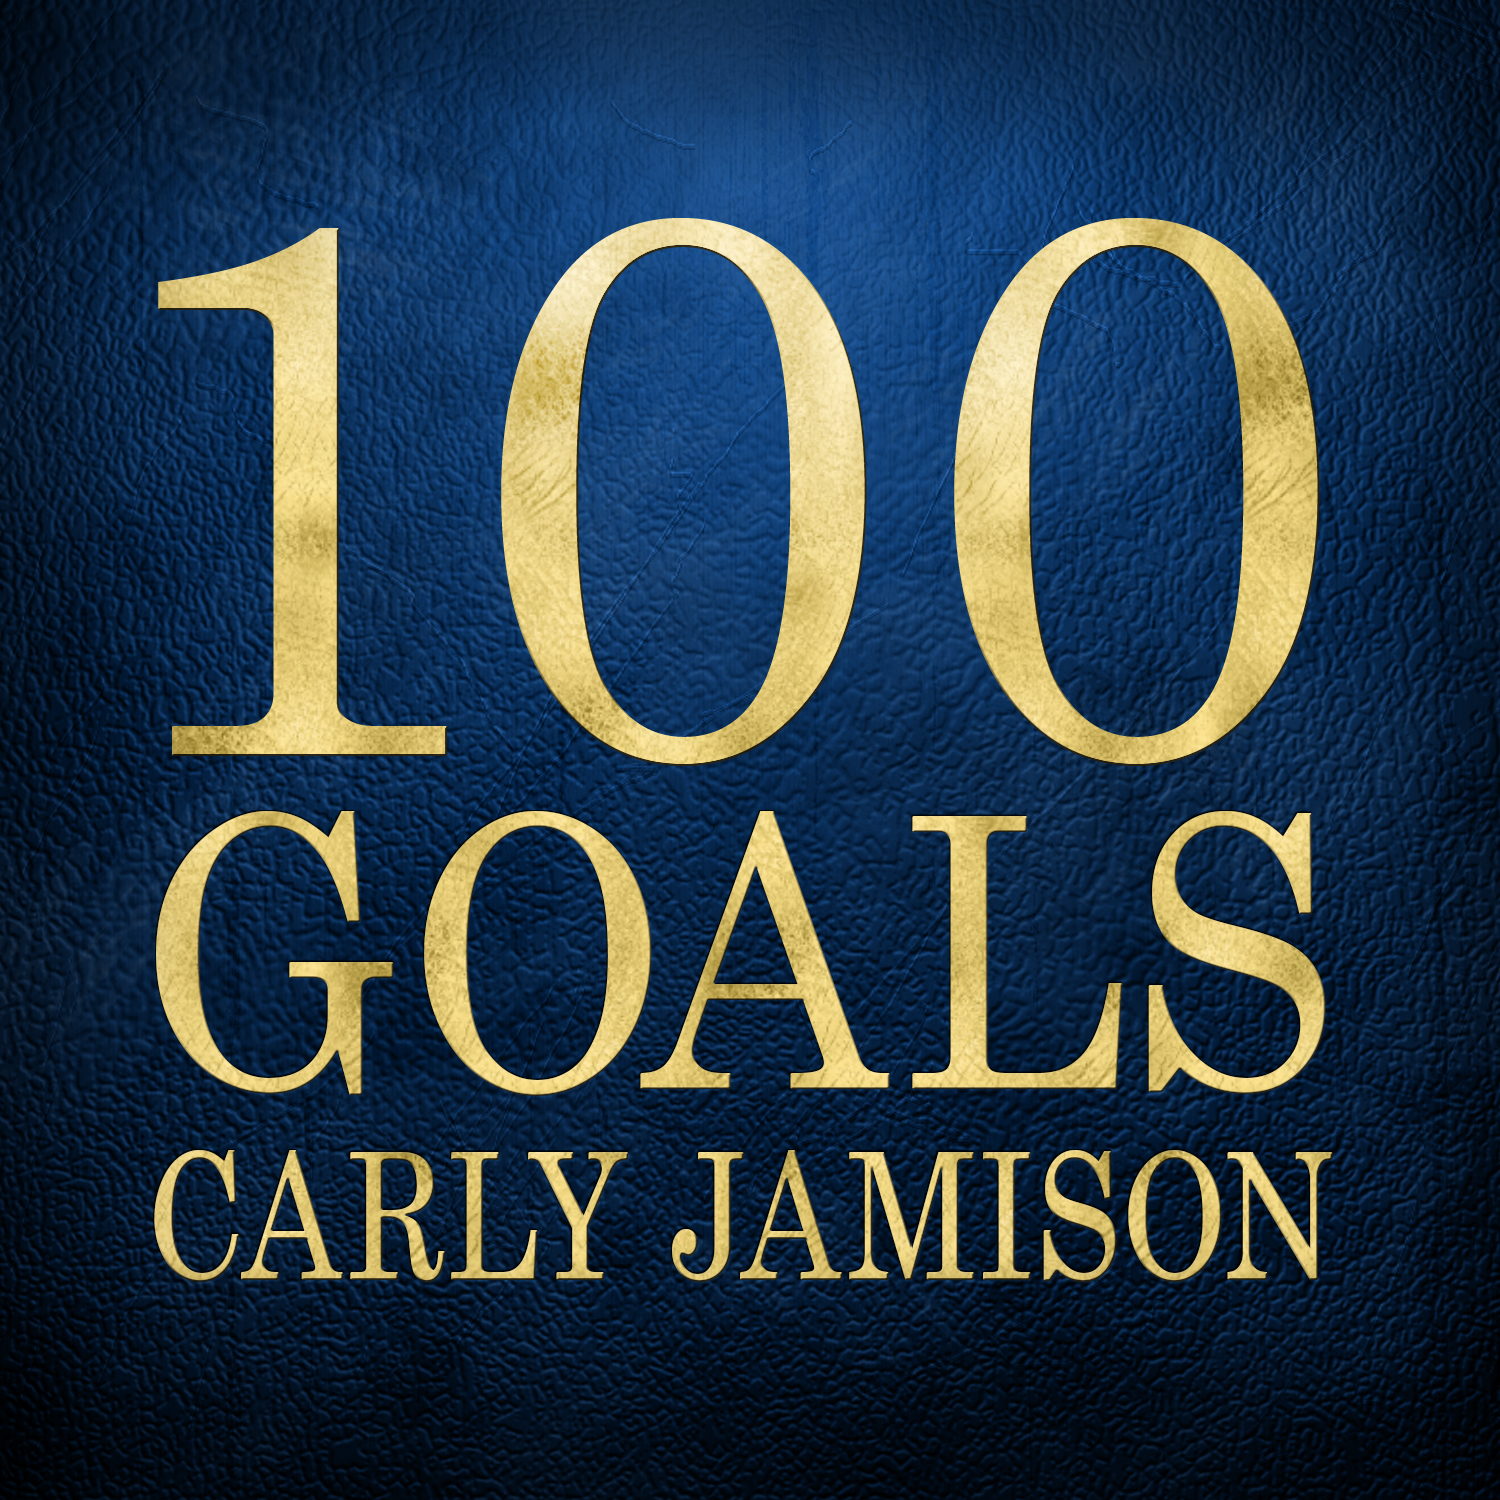 Carly Jamison - 100 Goals